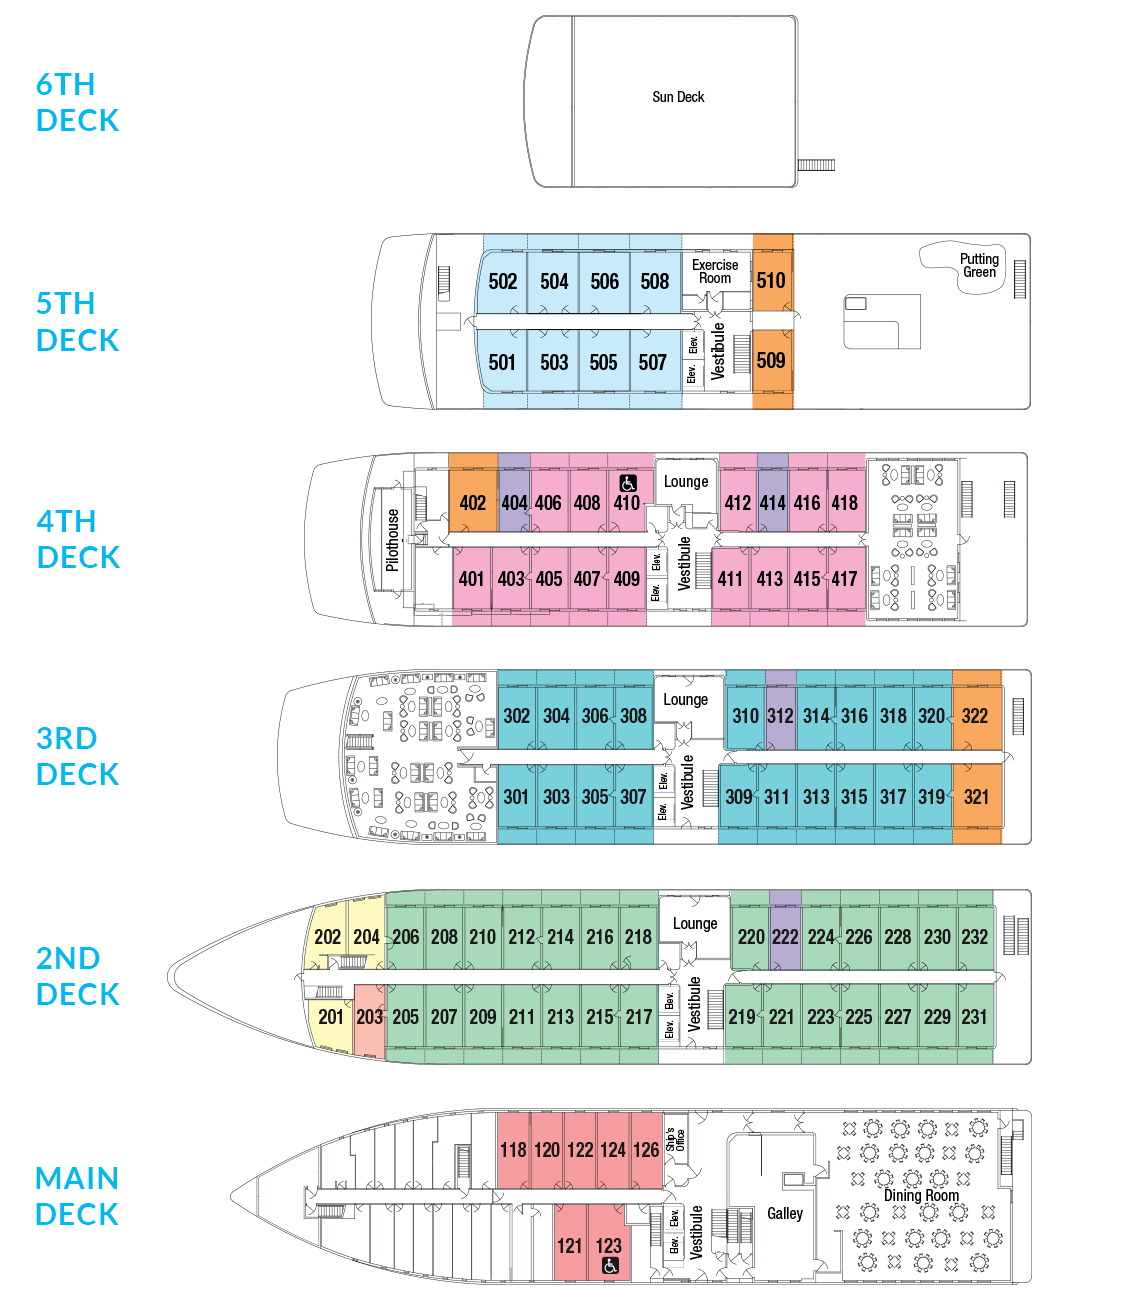 Cabin layout for American Constellation